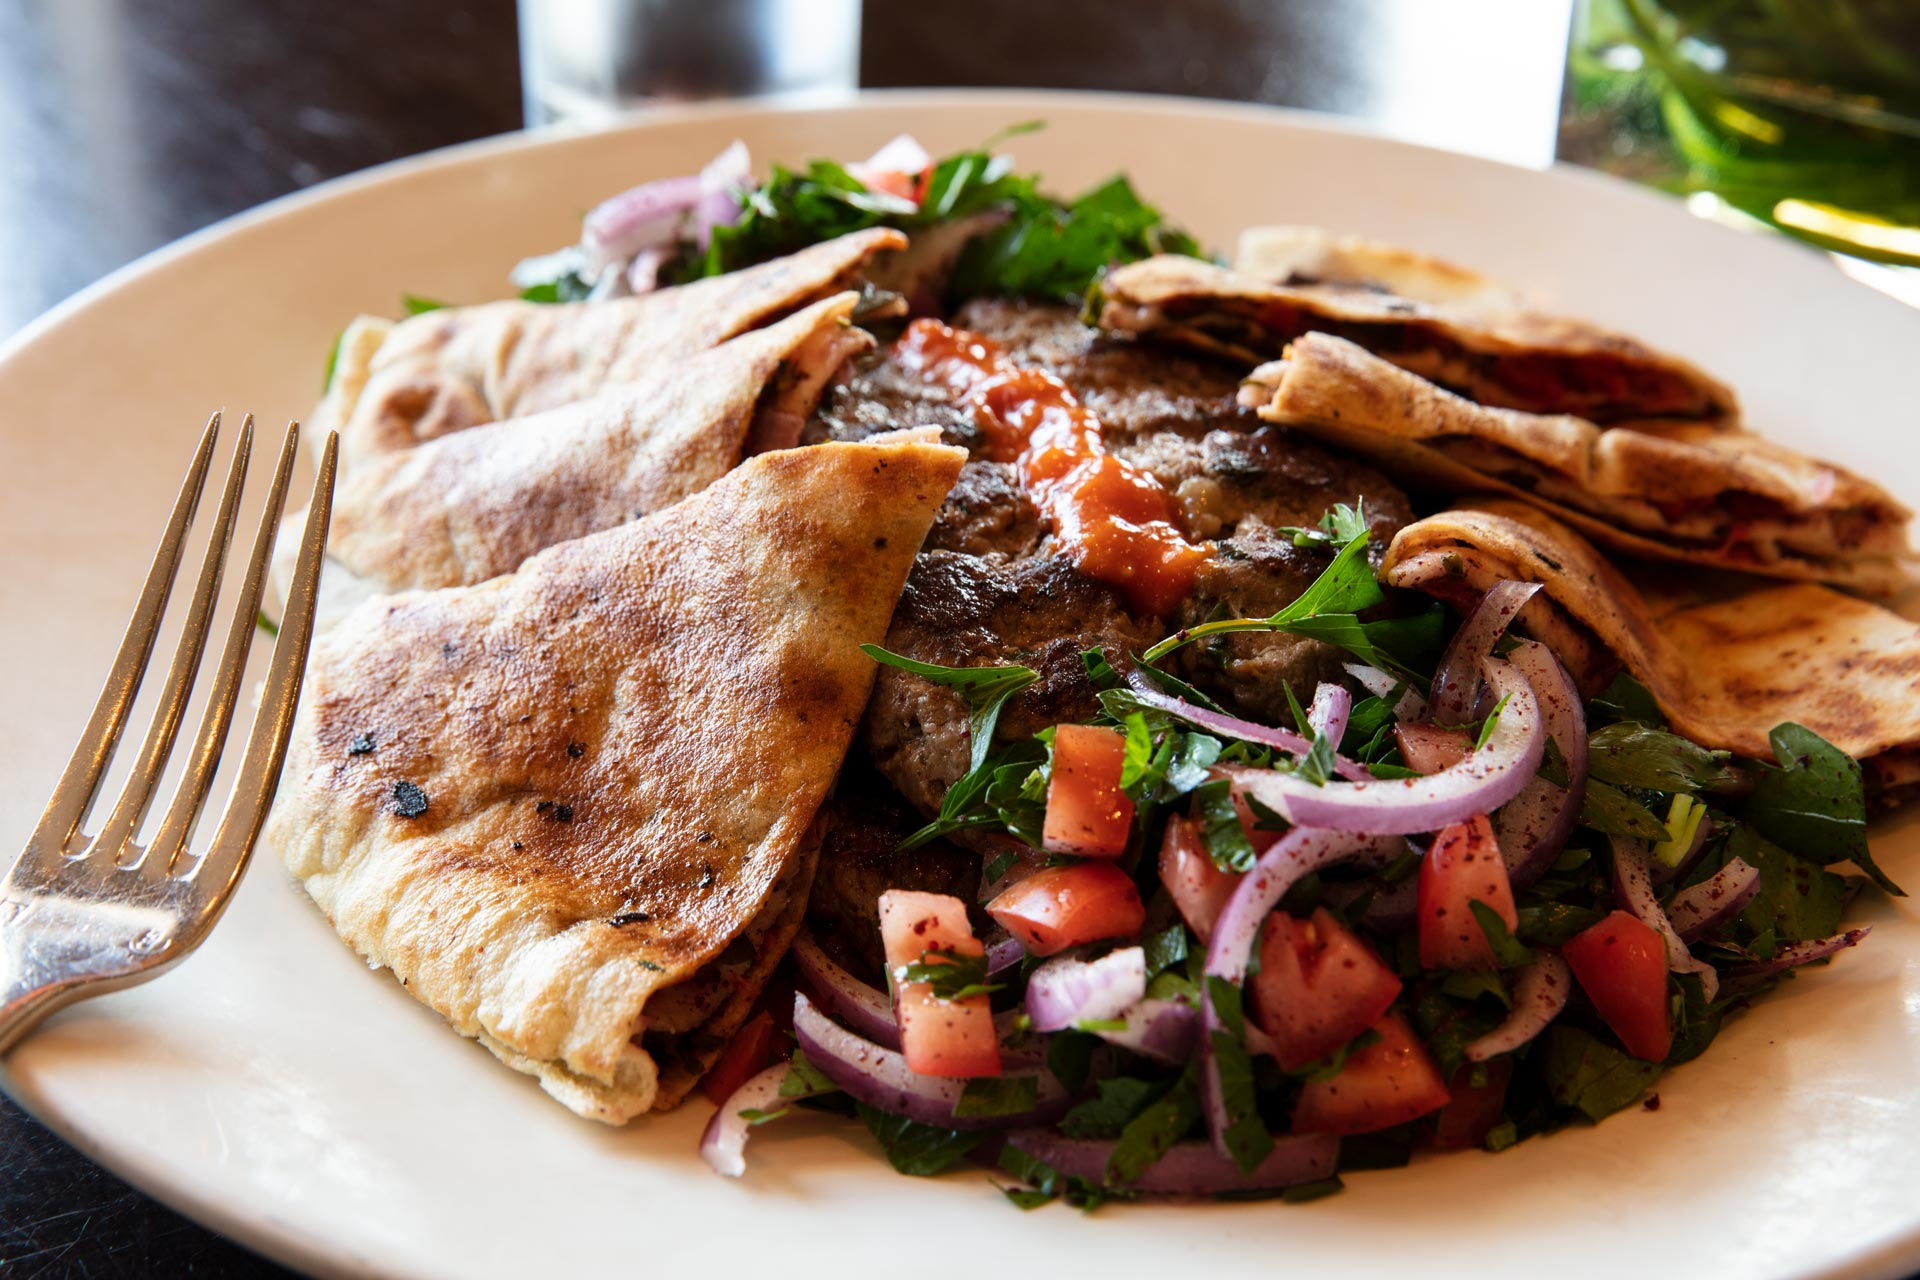 Delicious Lebanese style dinners at Olives Restaurant in Mankato, Minnesota.